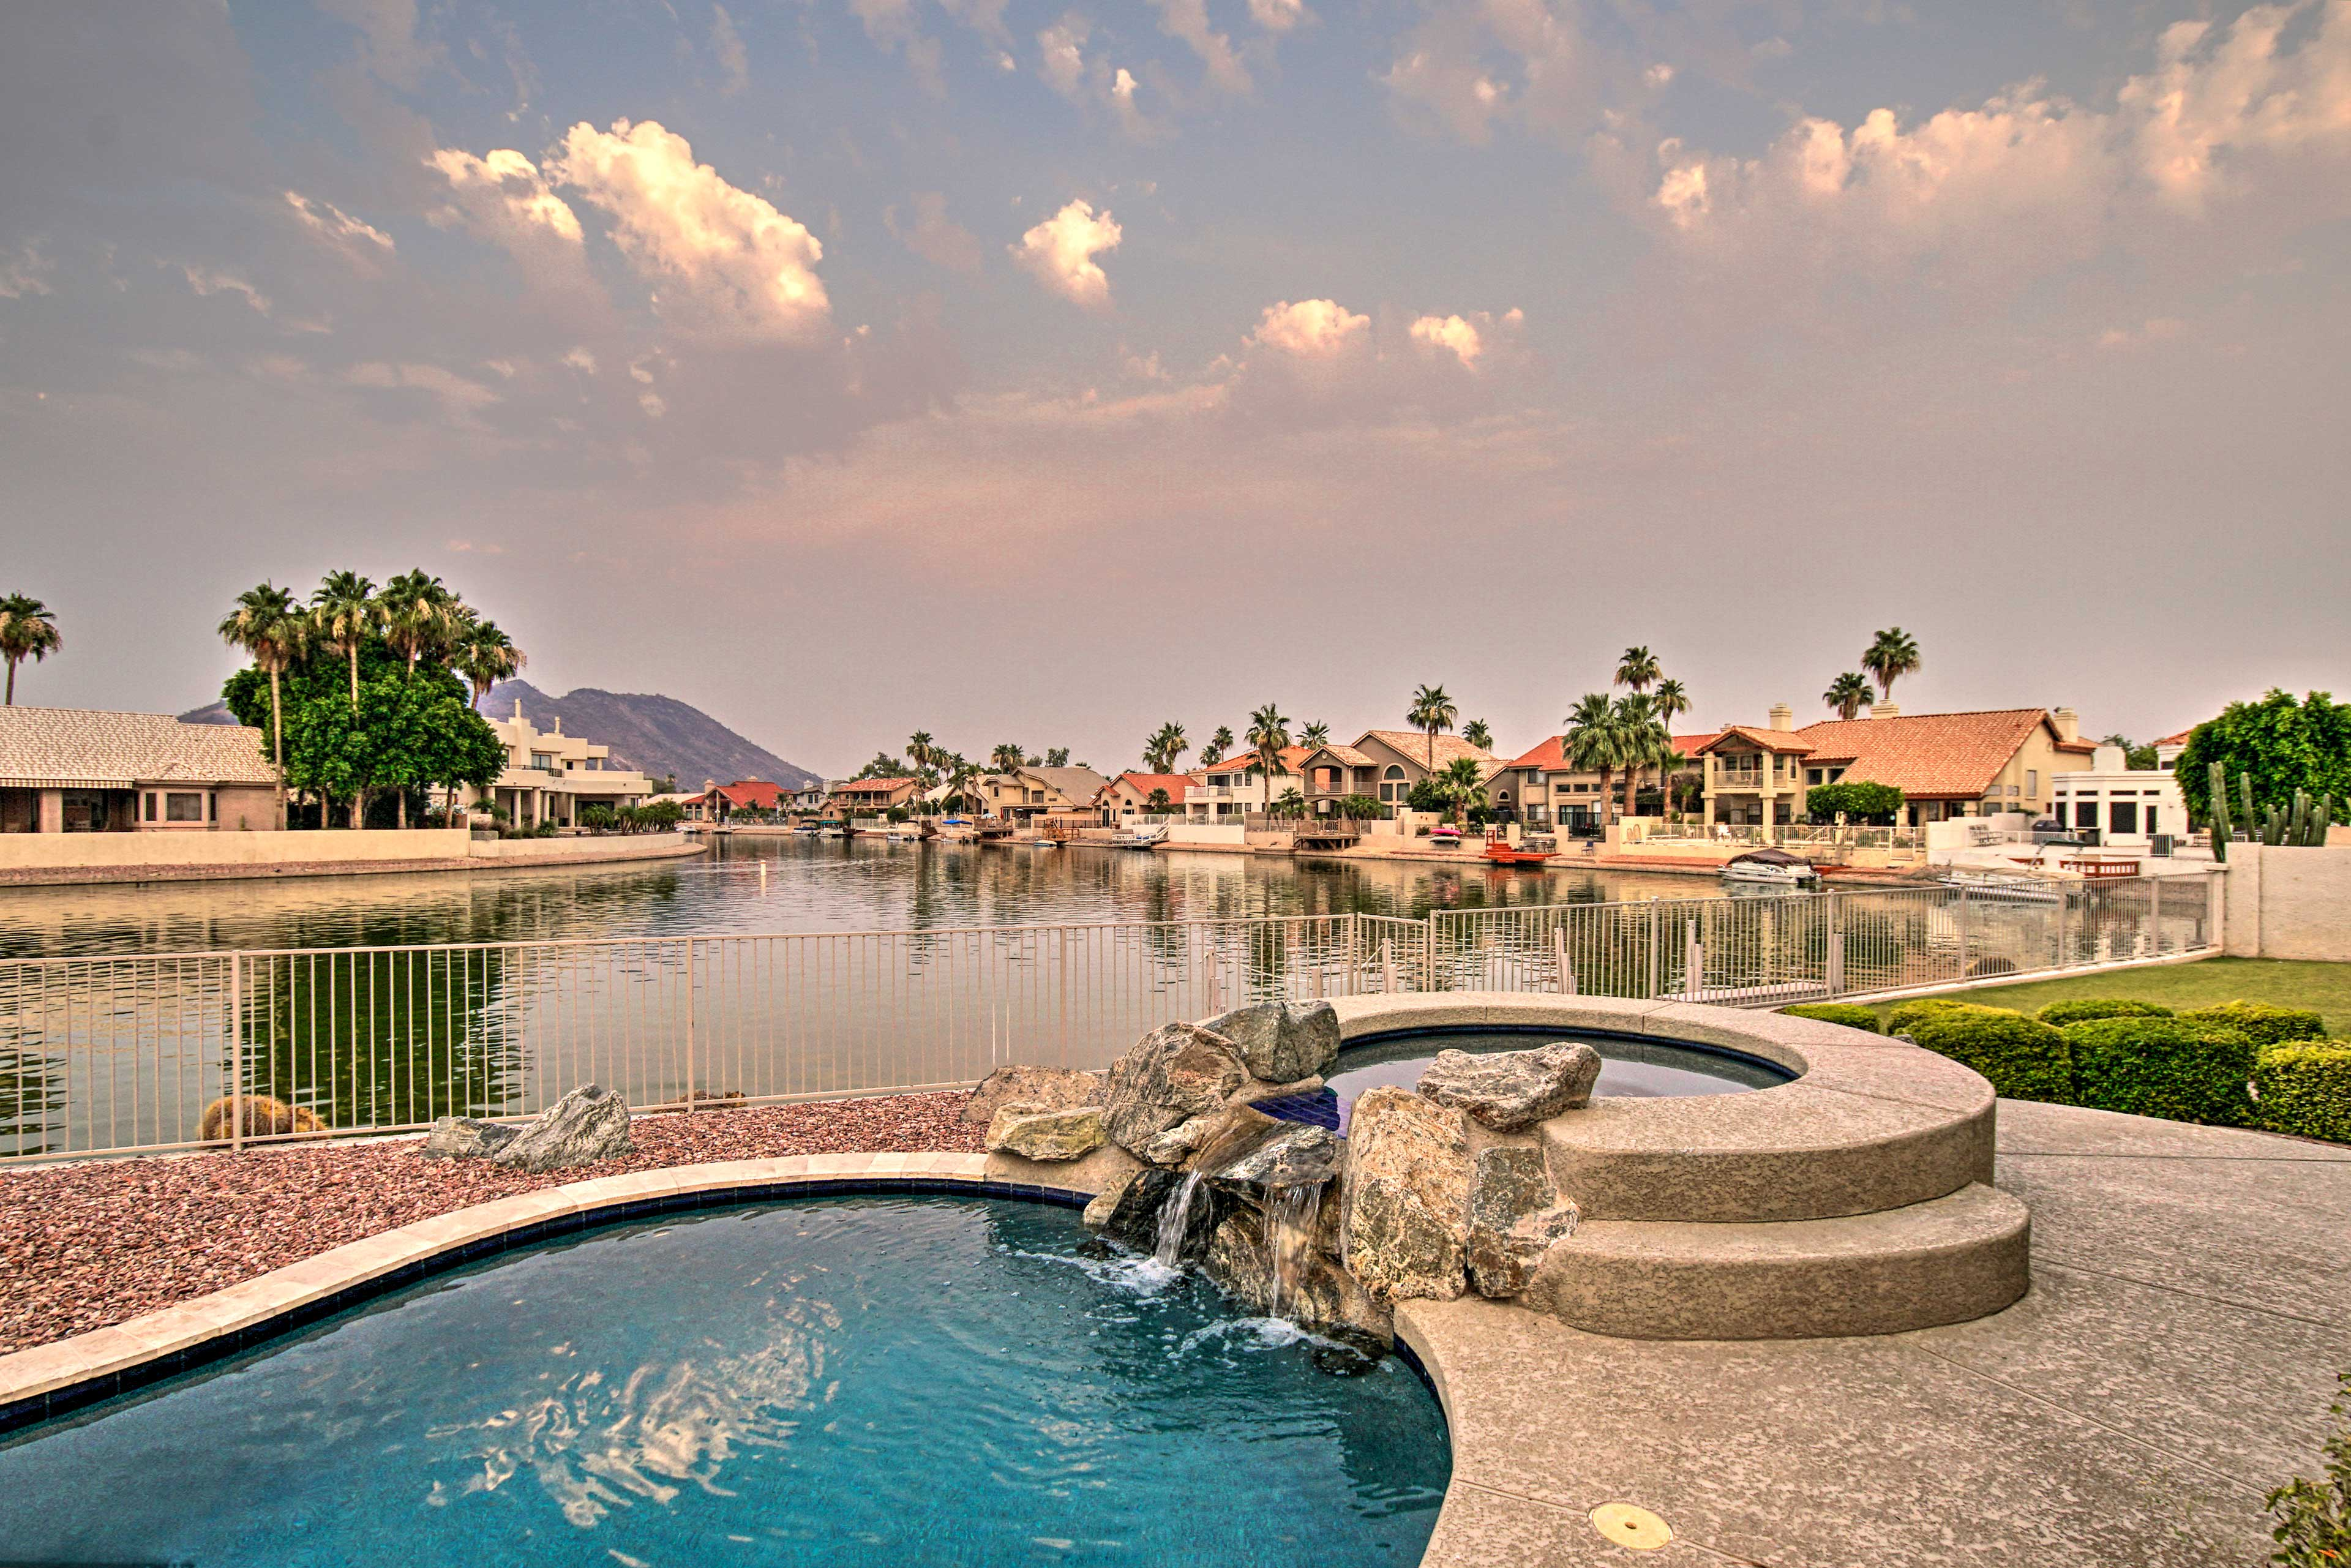 Glendale Vacation Rental Home   4BR   2.5BA   2,700 Sq Ft   Step-Free Access